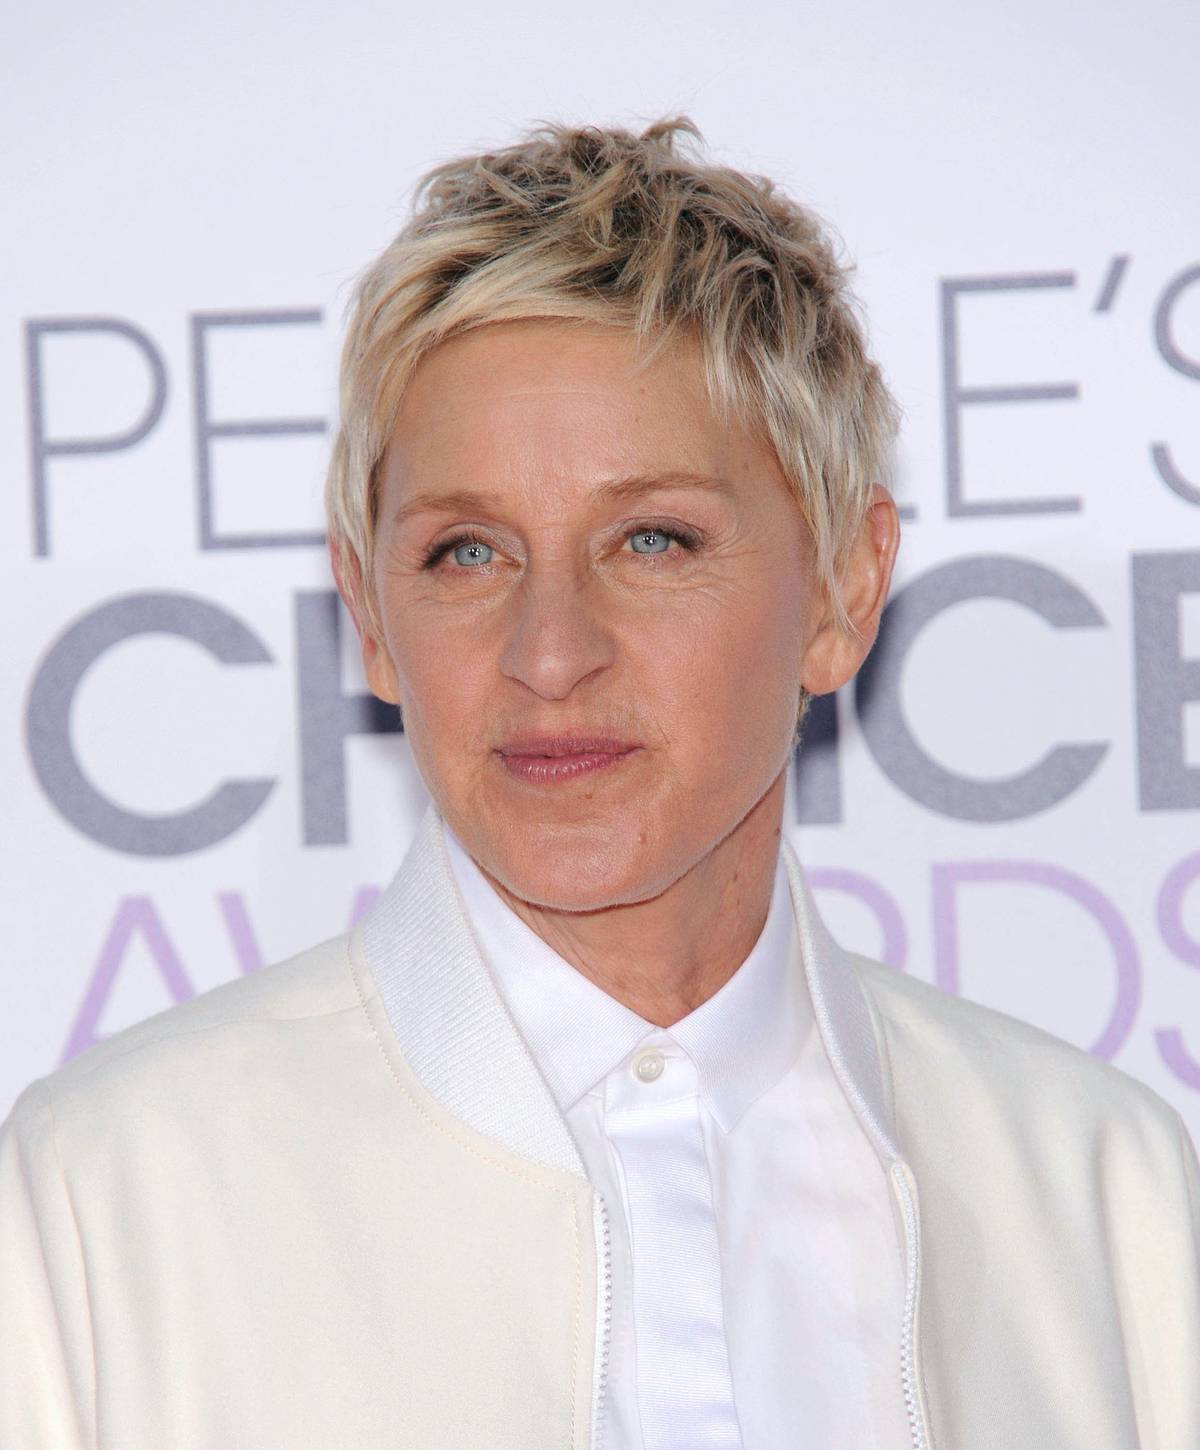 'We have not done enough': Ellen DeGeneres says she wants to change